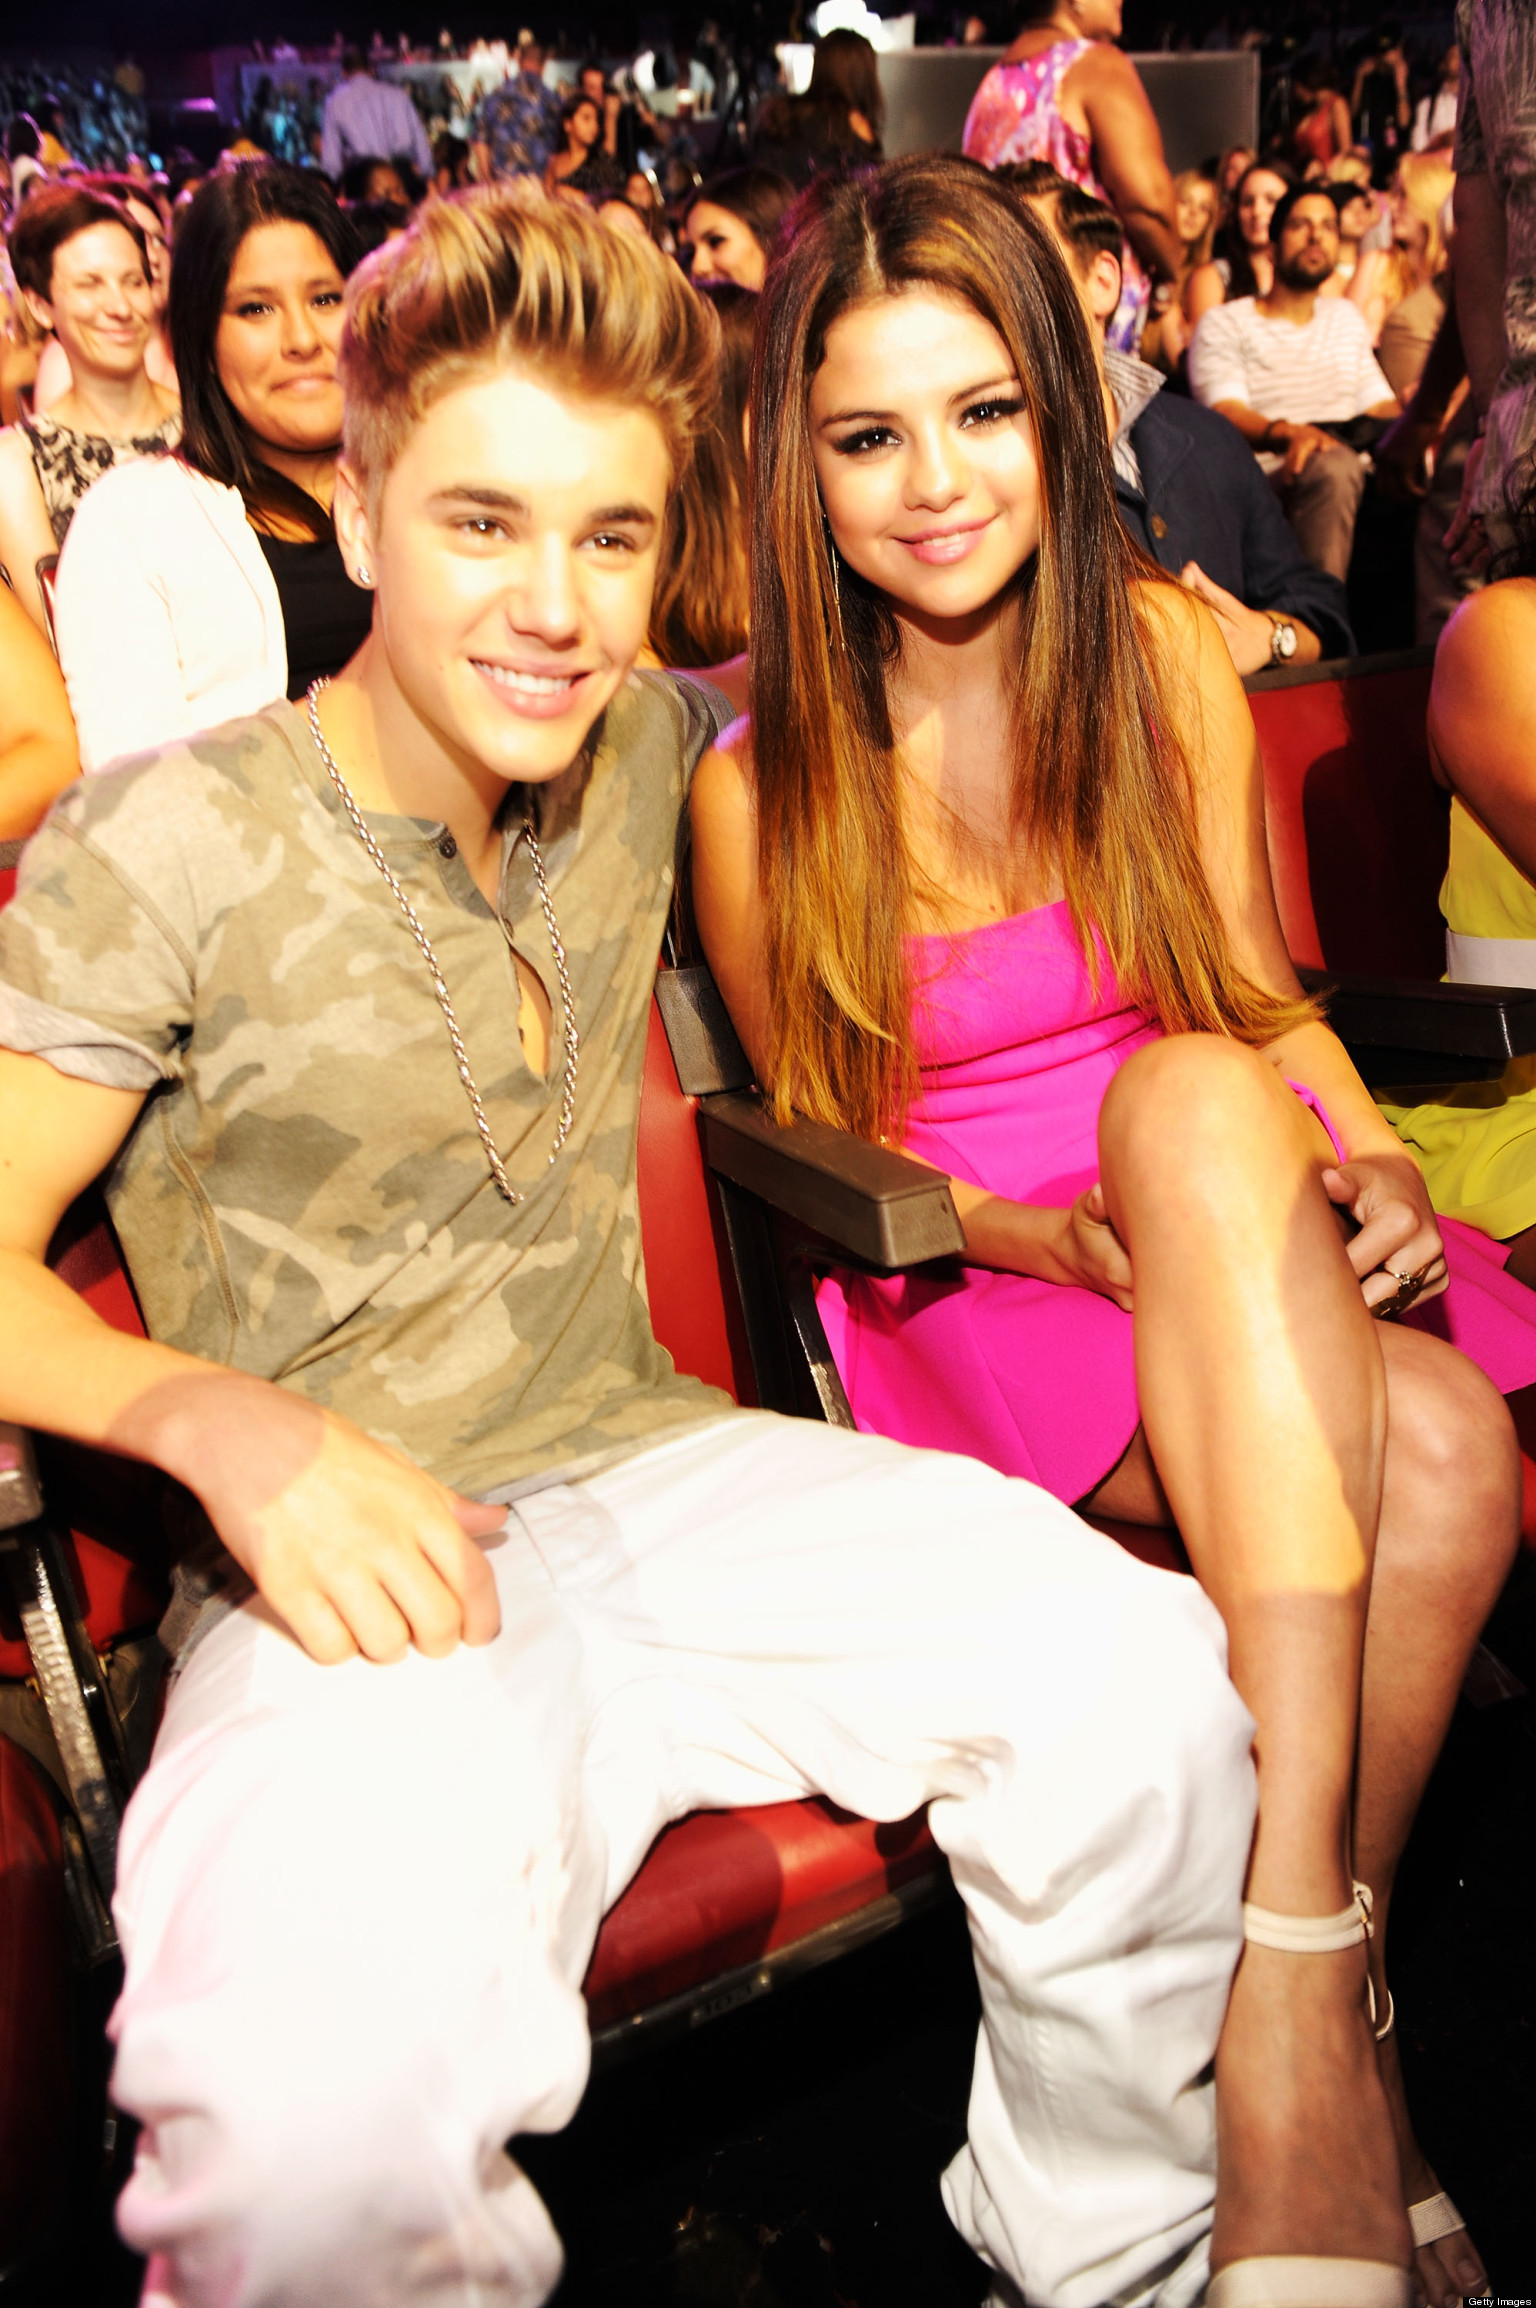 Selena Gomez Not Dating: Her Heart Belongs To Justin